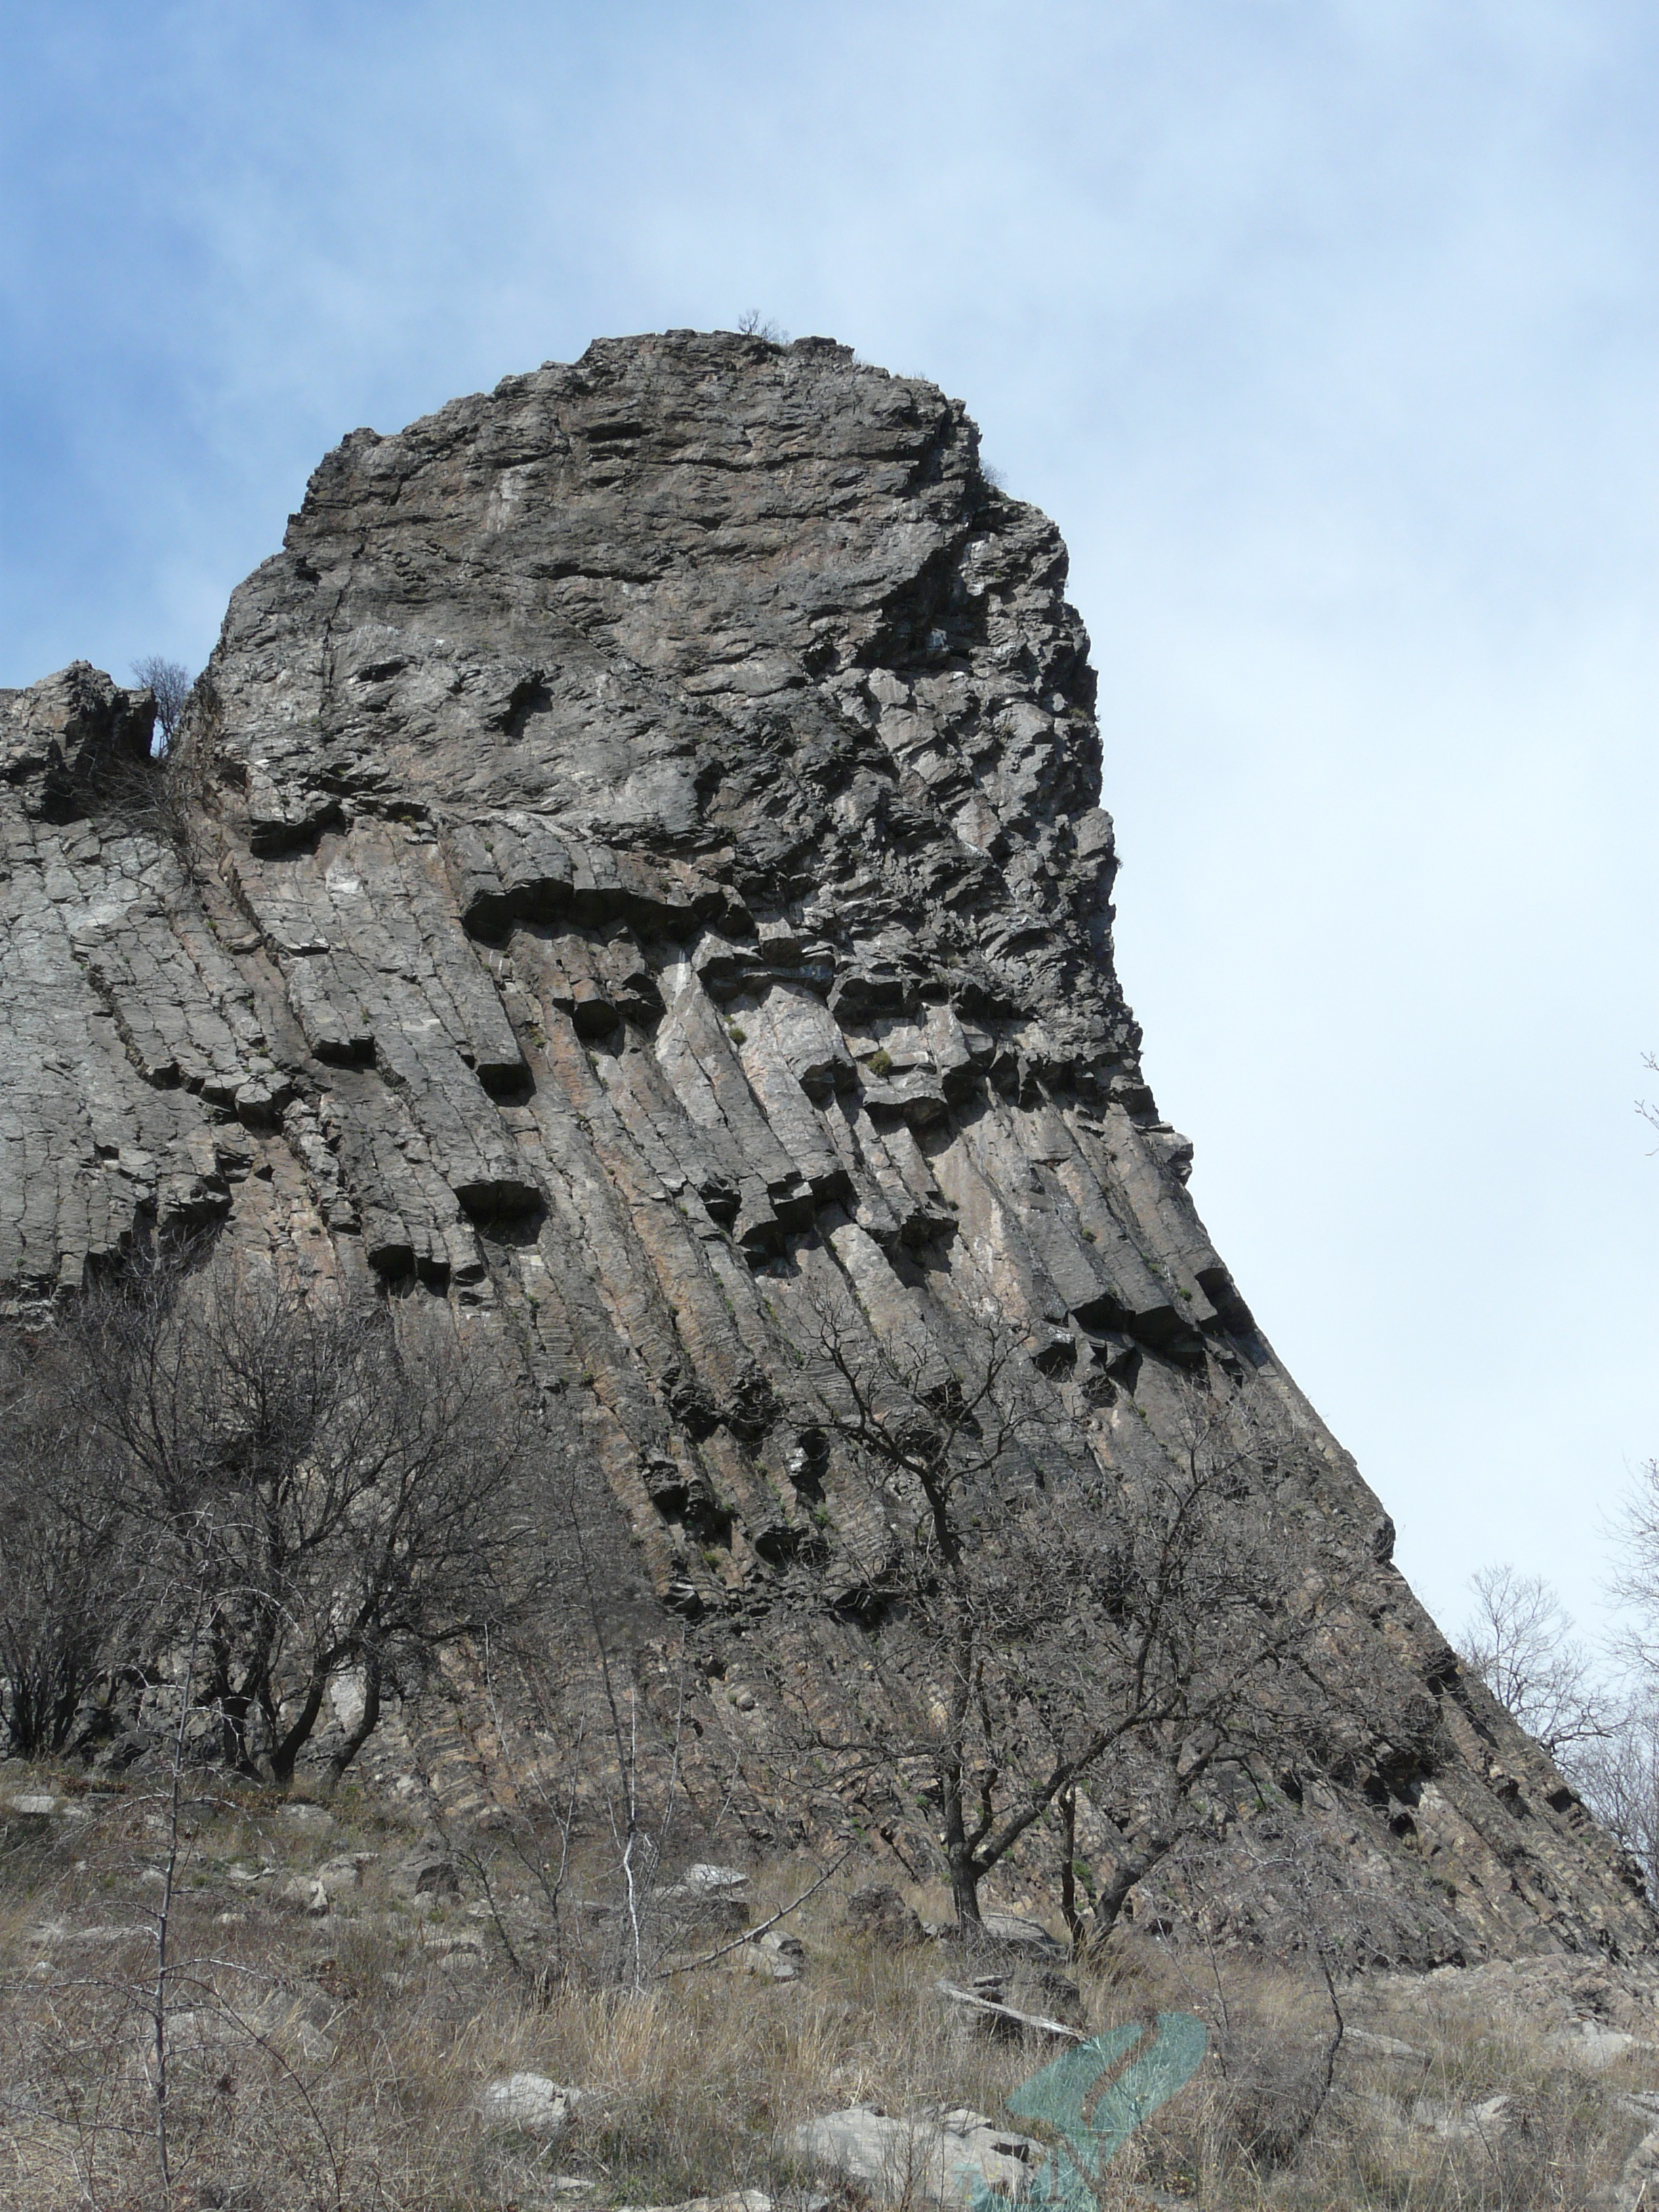 One of the towers of Momina skala